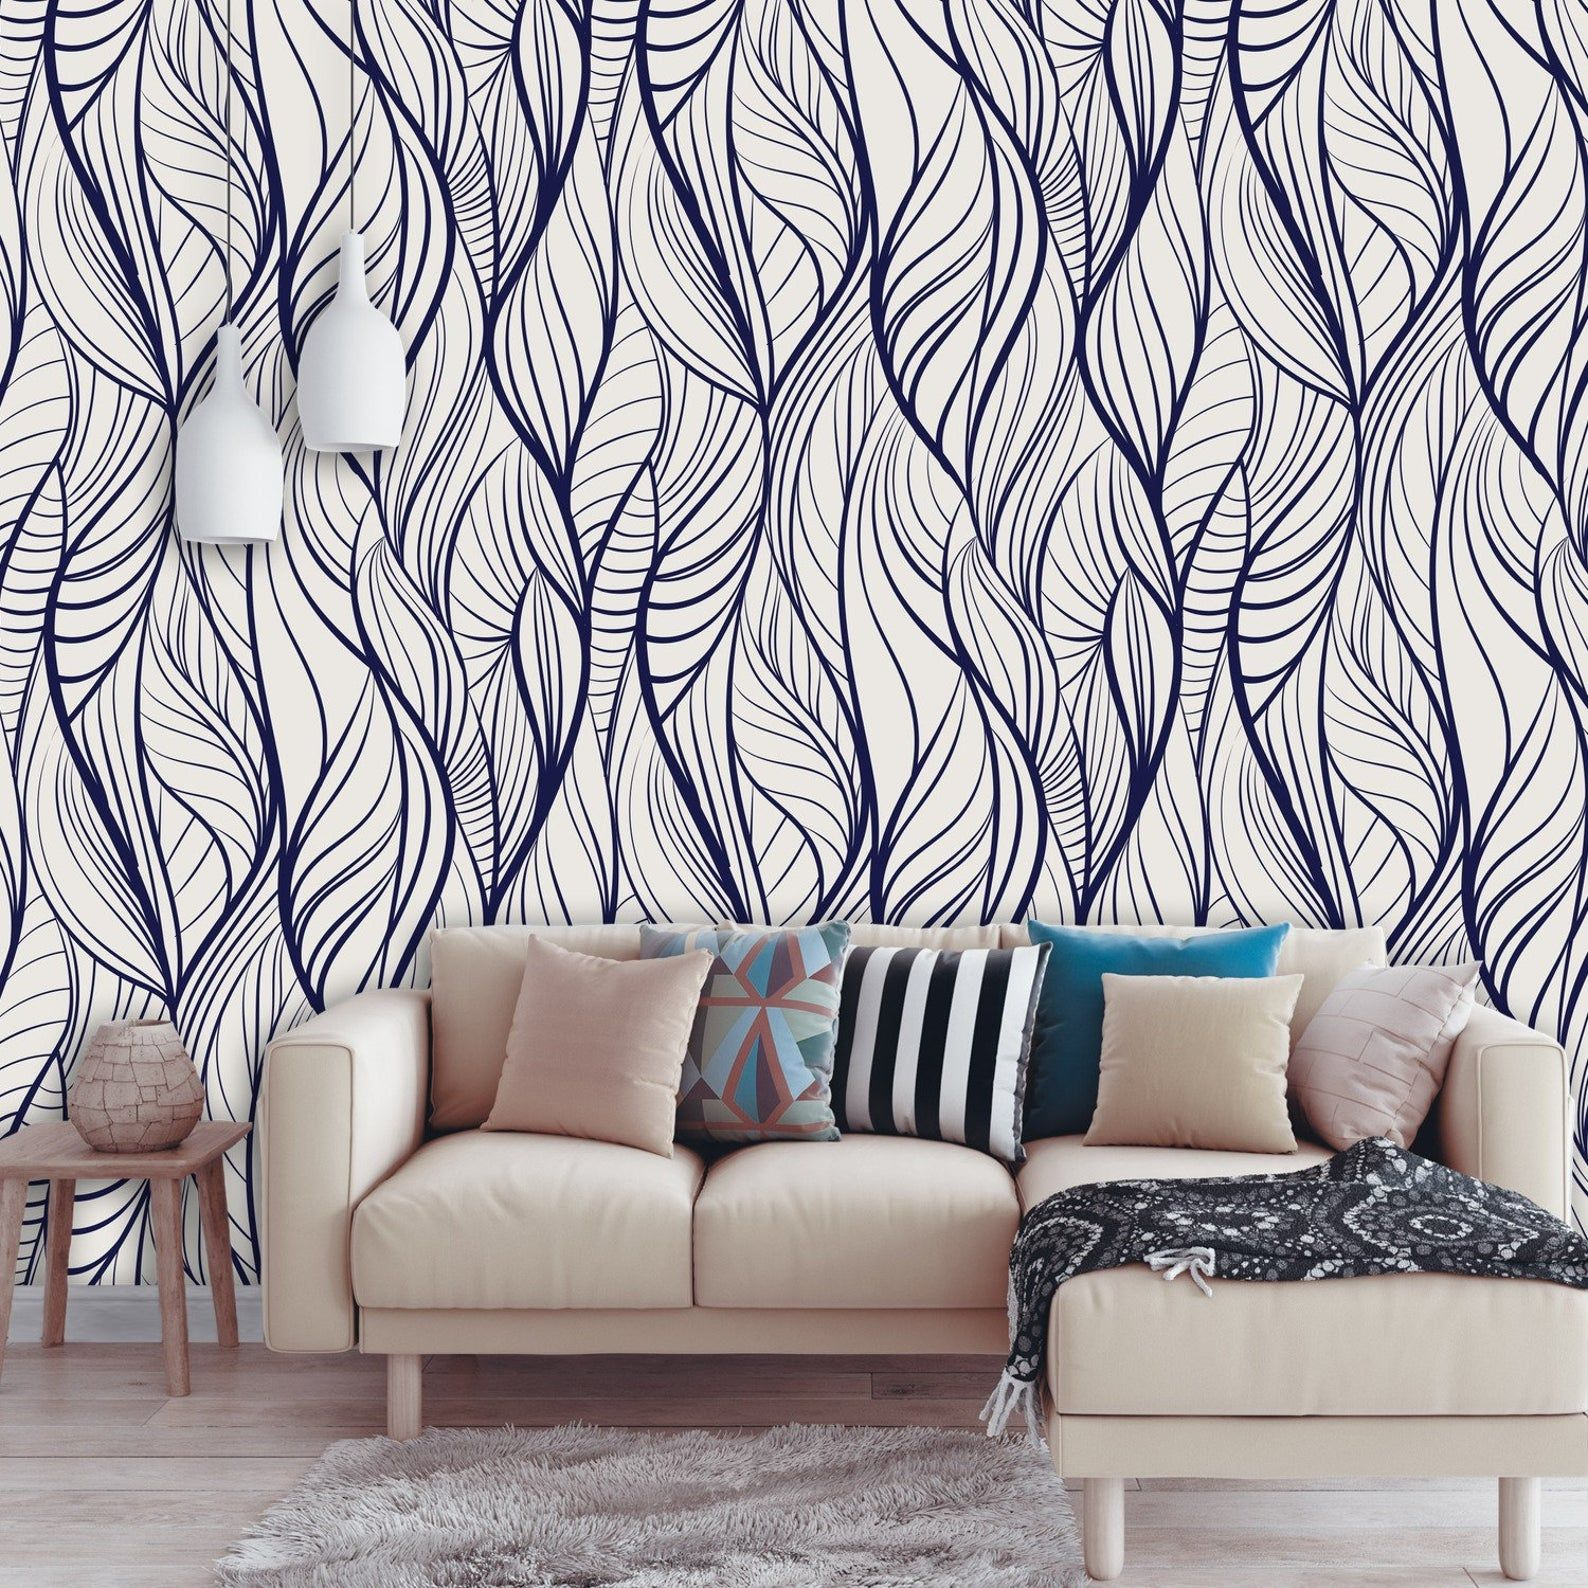 Abstract Removable Wallpaper Leaf Peel And Stick Wall Paper Etsy Dark Blue Wallpaper Blue Wallpapers Removable Wallpaper